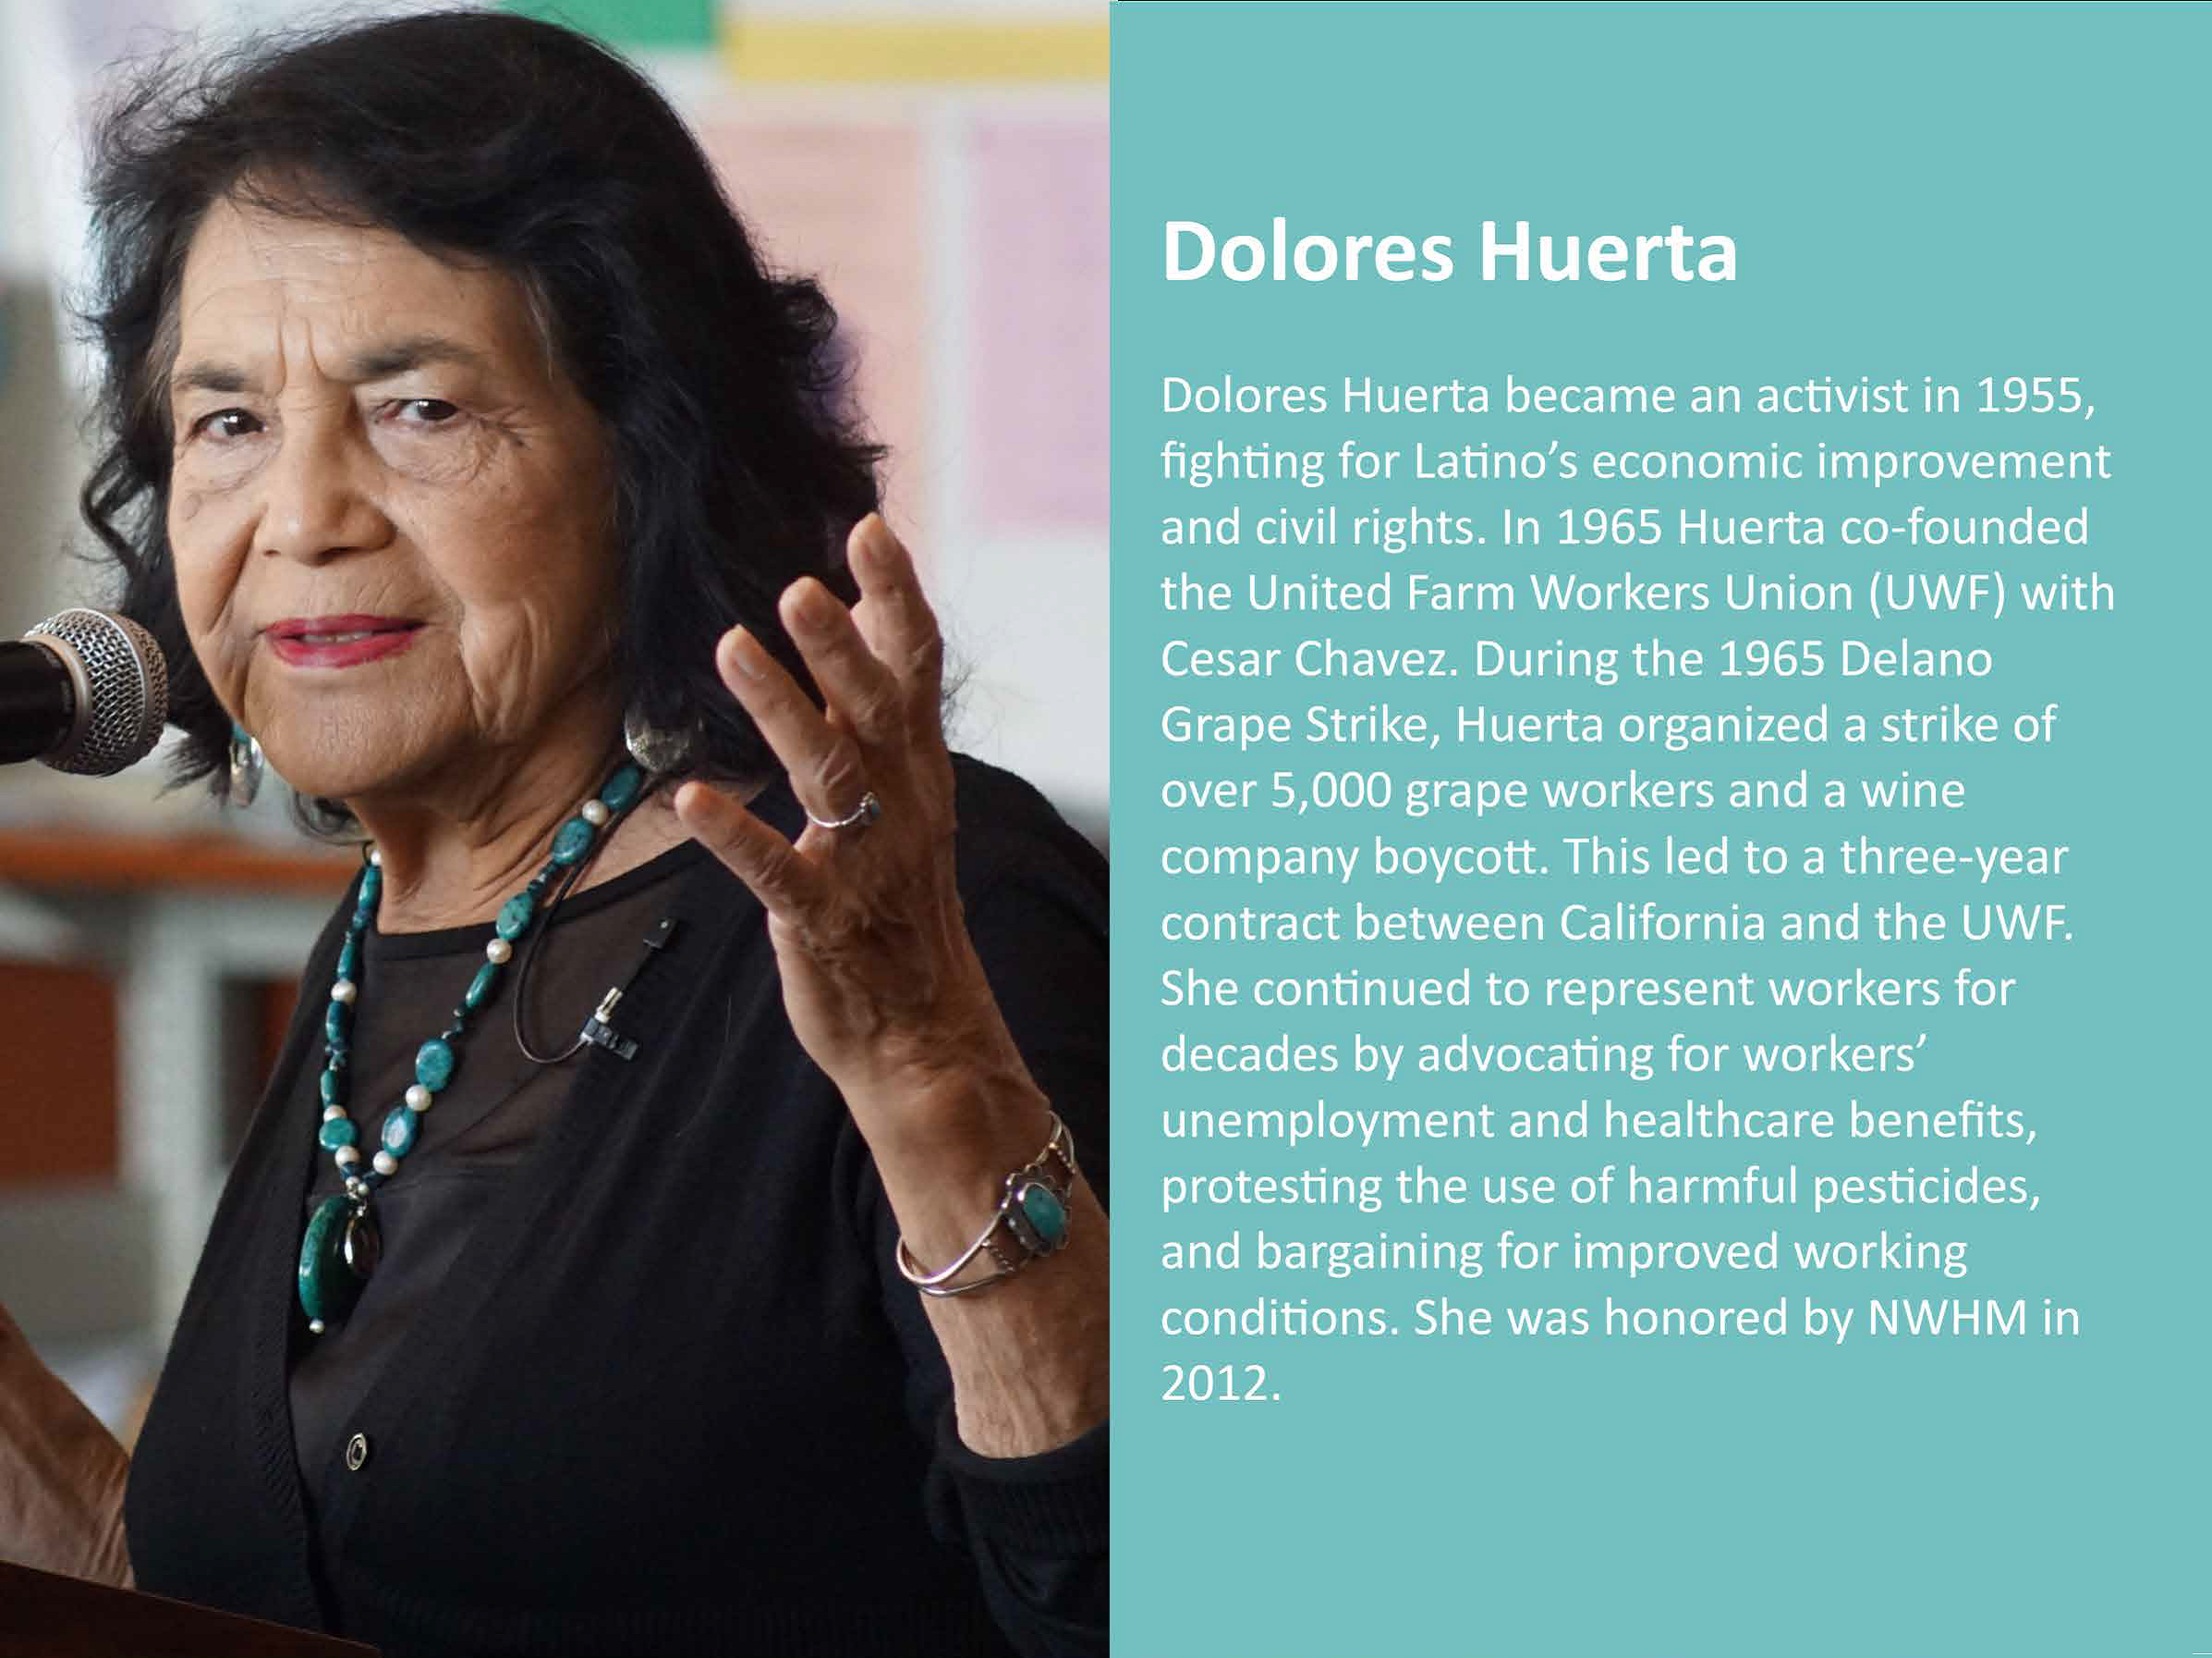 Dolores Huerta became an activist in 1955, fighting for Latino's economic improvement and civil rights. In 1965 Huerta co-founded the United Farm Workers Union (UWF) with Cesar Chavez. During the 1965 Delano Grape Strike, Huerta organized a strike of over 5,000 grade workers and a wine company boycott. This led to a three-year contract between California and the UWF. She continued to represent workers for decades by advocating for workers' unemployment and healthcare benefits, protesting the use of harmful pesticides, and bargaining for improved working conditions. She was honored by NWHM in 2021.